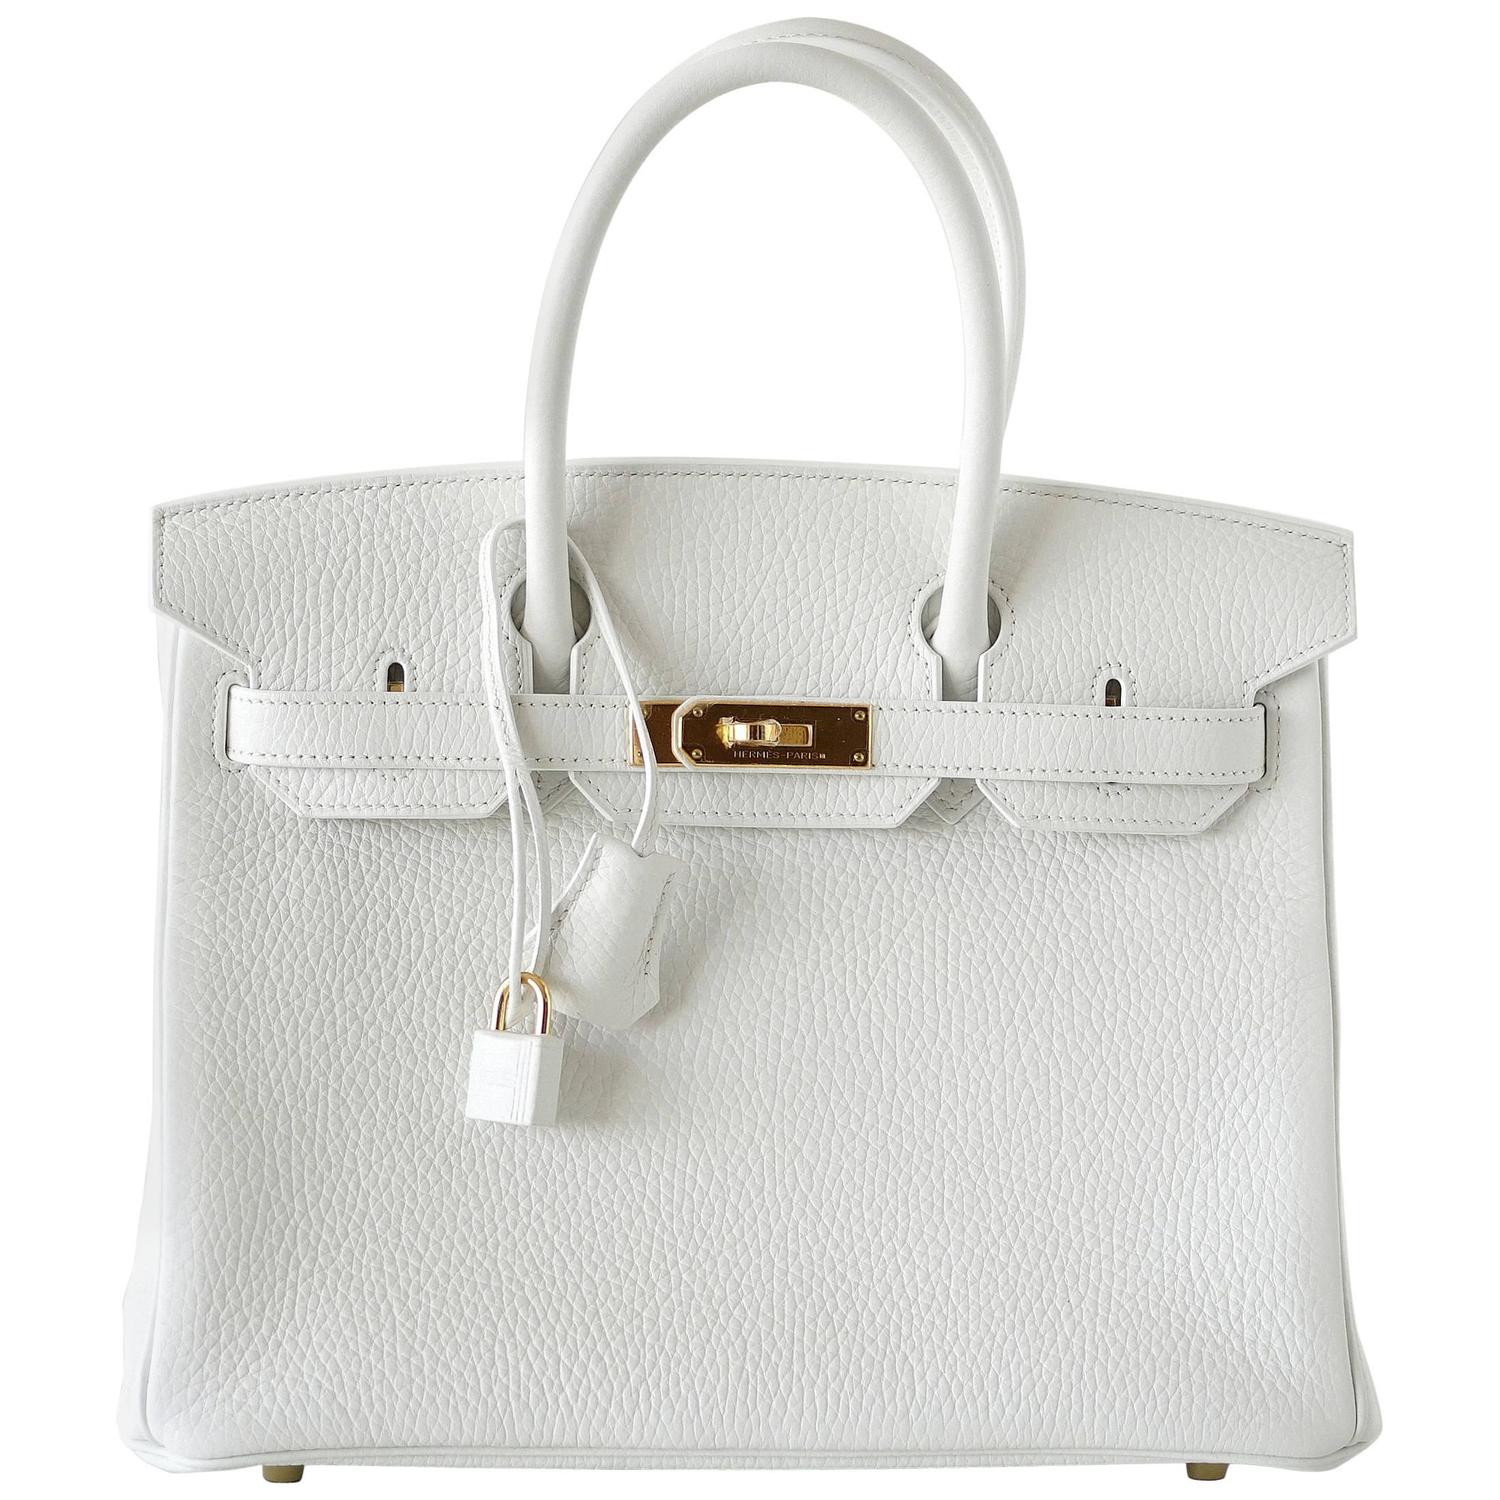 faux hermes handbags - mightychic Top Handle Bags - Miami, FL 33138 - 1stdibs